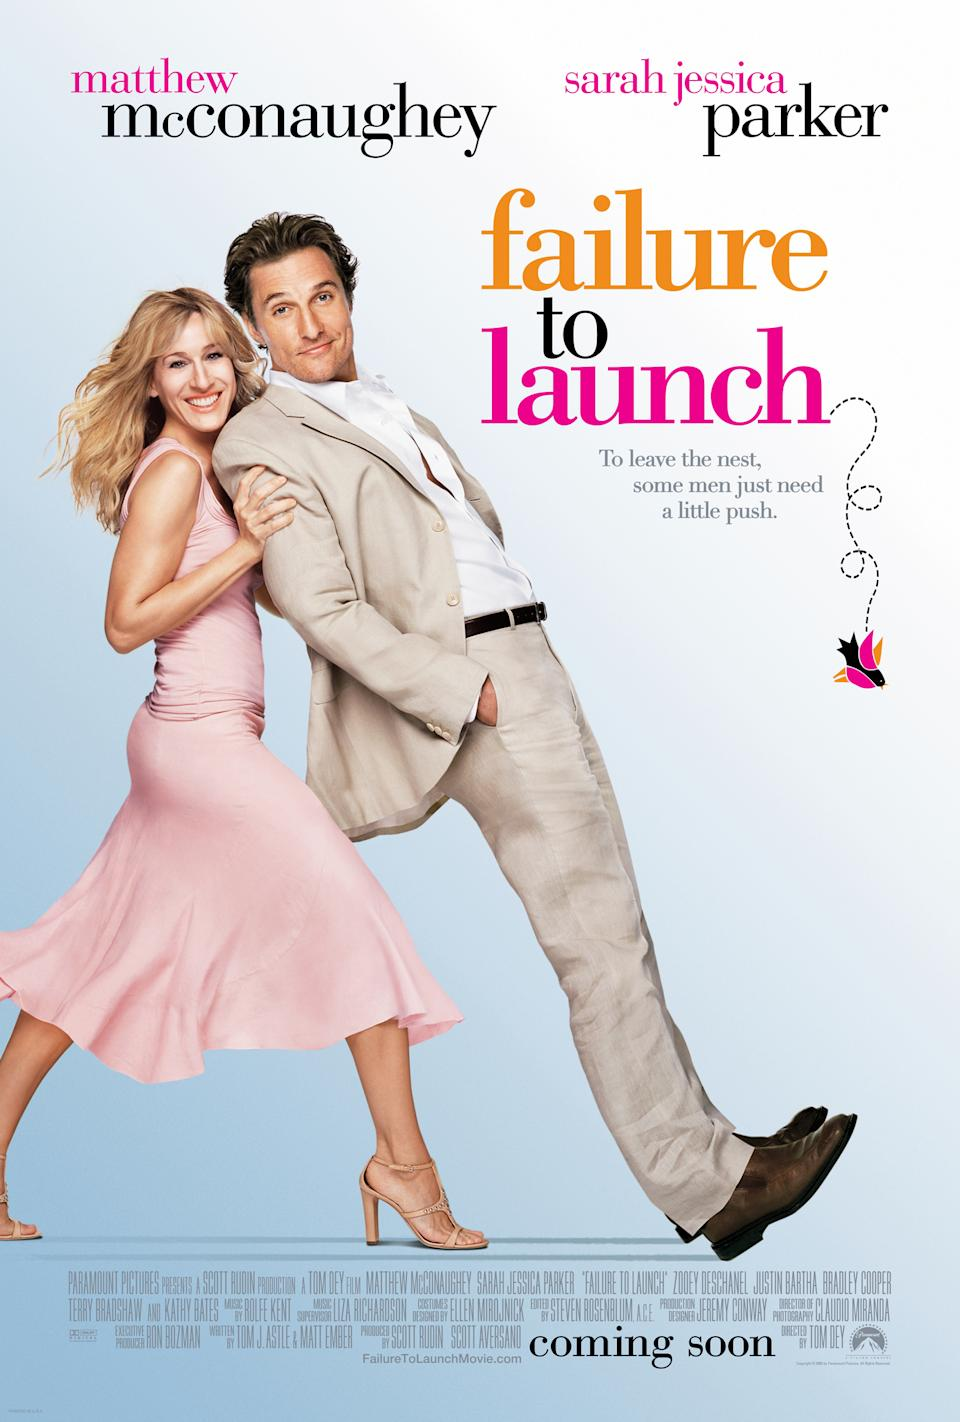 Failure To Launch (Credit: Paramount)